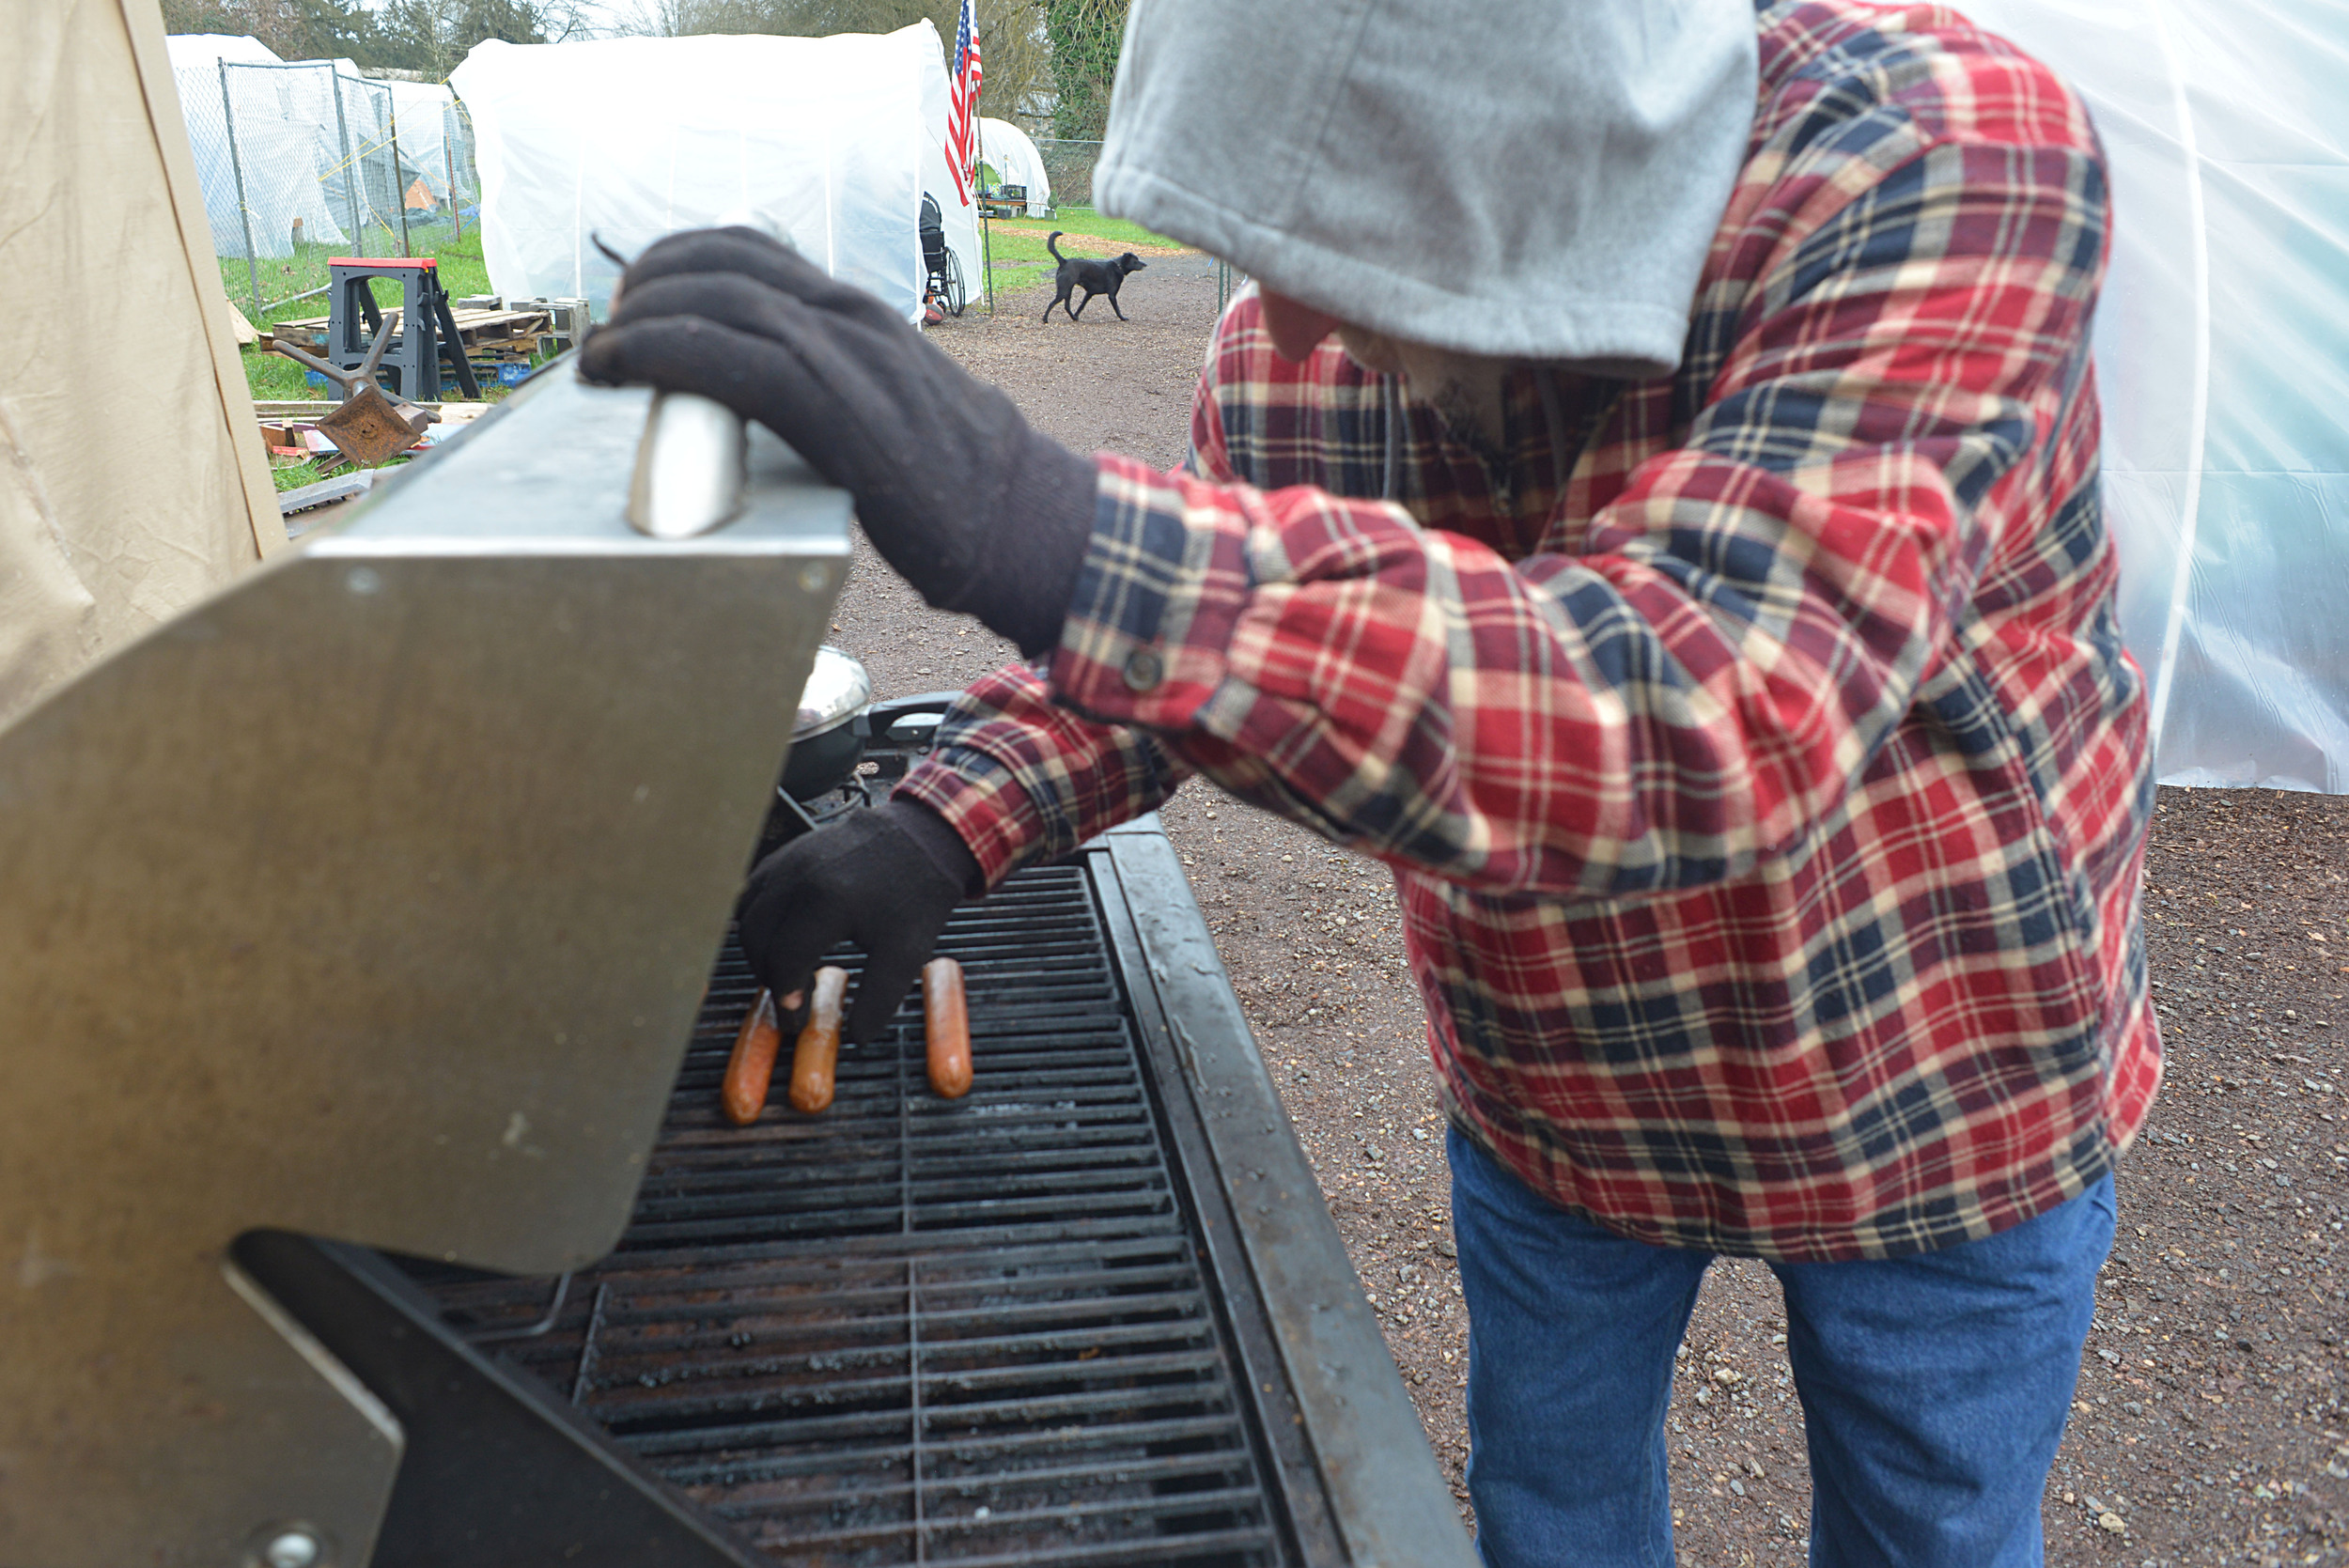 Eugene, Ore. - Mike Myers, the site manager at NHS, is cooking lunch on the propane gas grill donated to the camp by larger community. By: Debra Josephson